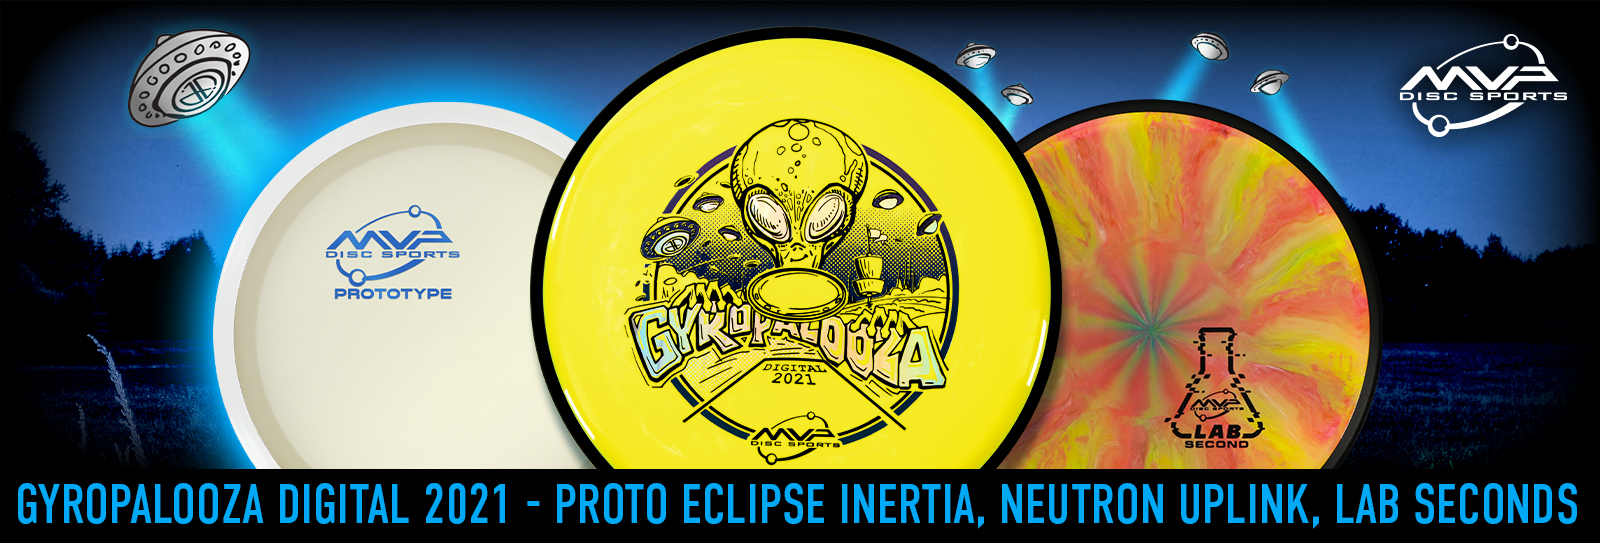 GYROpalooza banner featuring Yellow Uplink, Blue Glow Inertia, and Various Lab Seconds discs